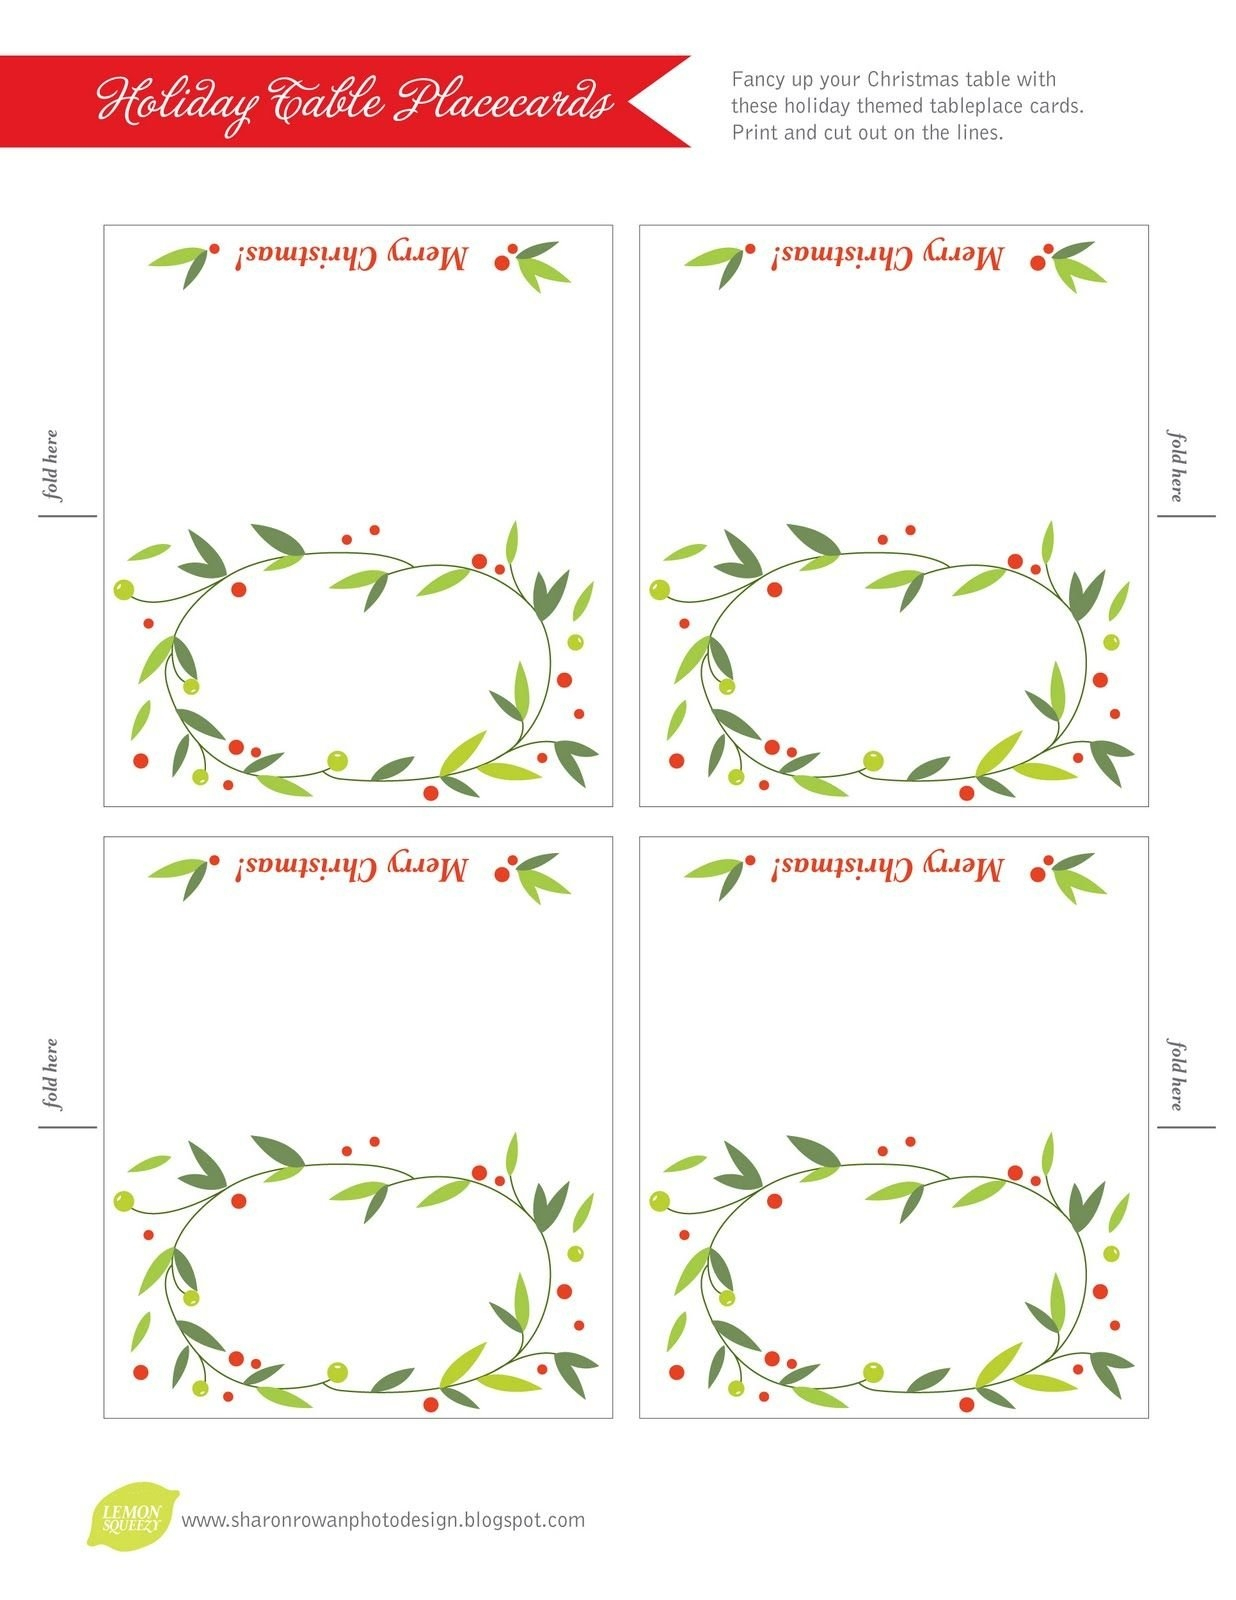 020 Template Ideas Free Printable Lemon Squeezy Day Place Cards - Free Printable Christmas Table Place Cards Template